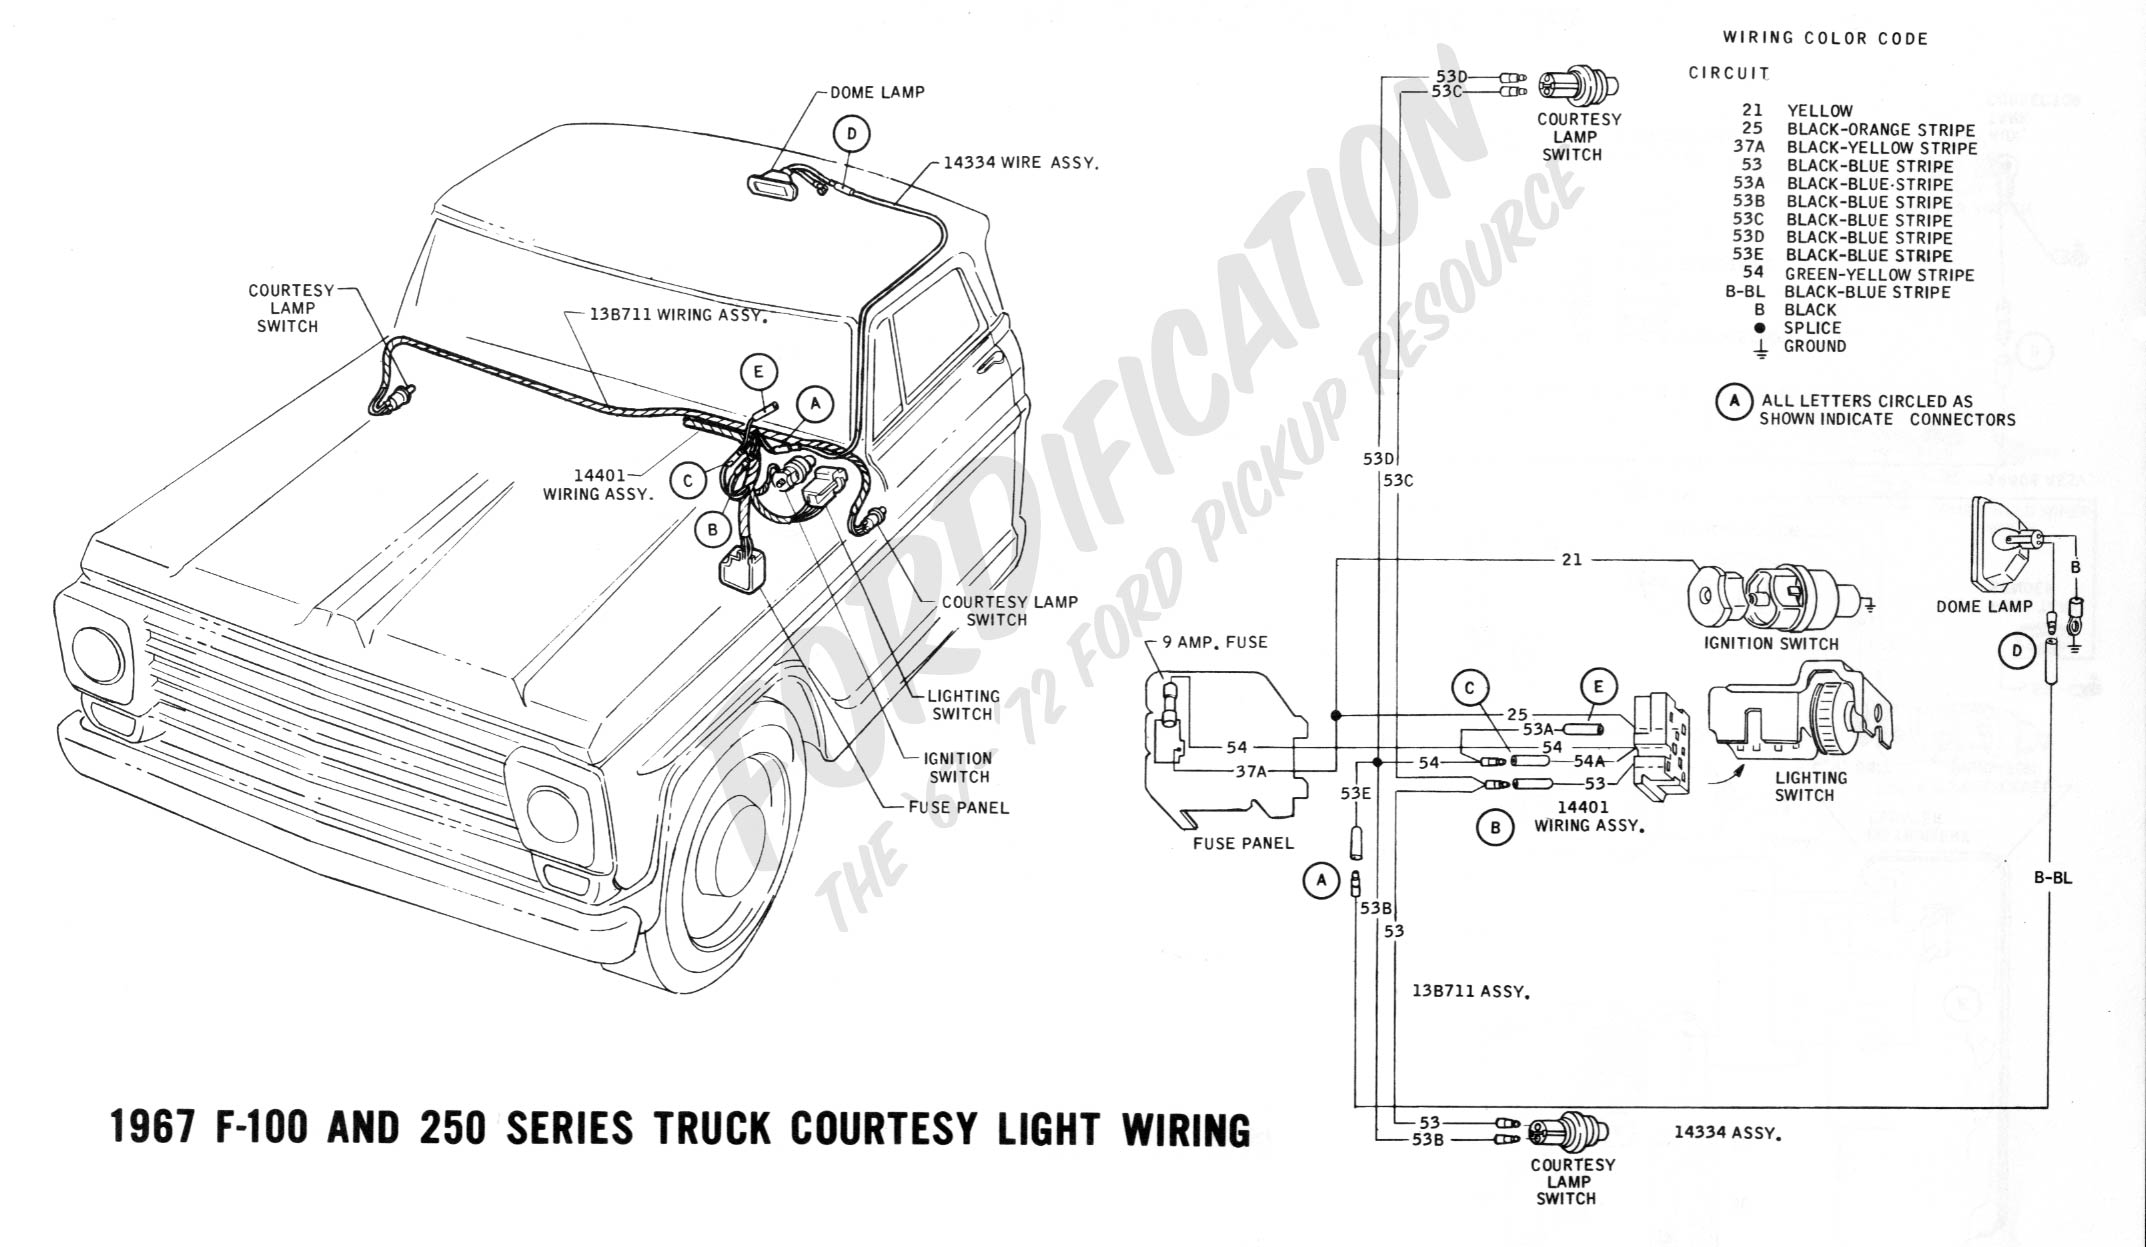 1969 ford f100 wiring diagram detailed schematic diagrams rh 4rmotorsports com 1998 Ford Truck Wiring Diagrams Ford Voltage Regulator Wiring Diagram